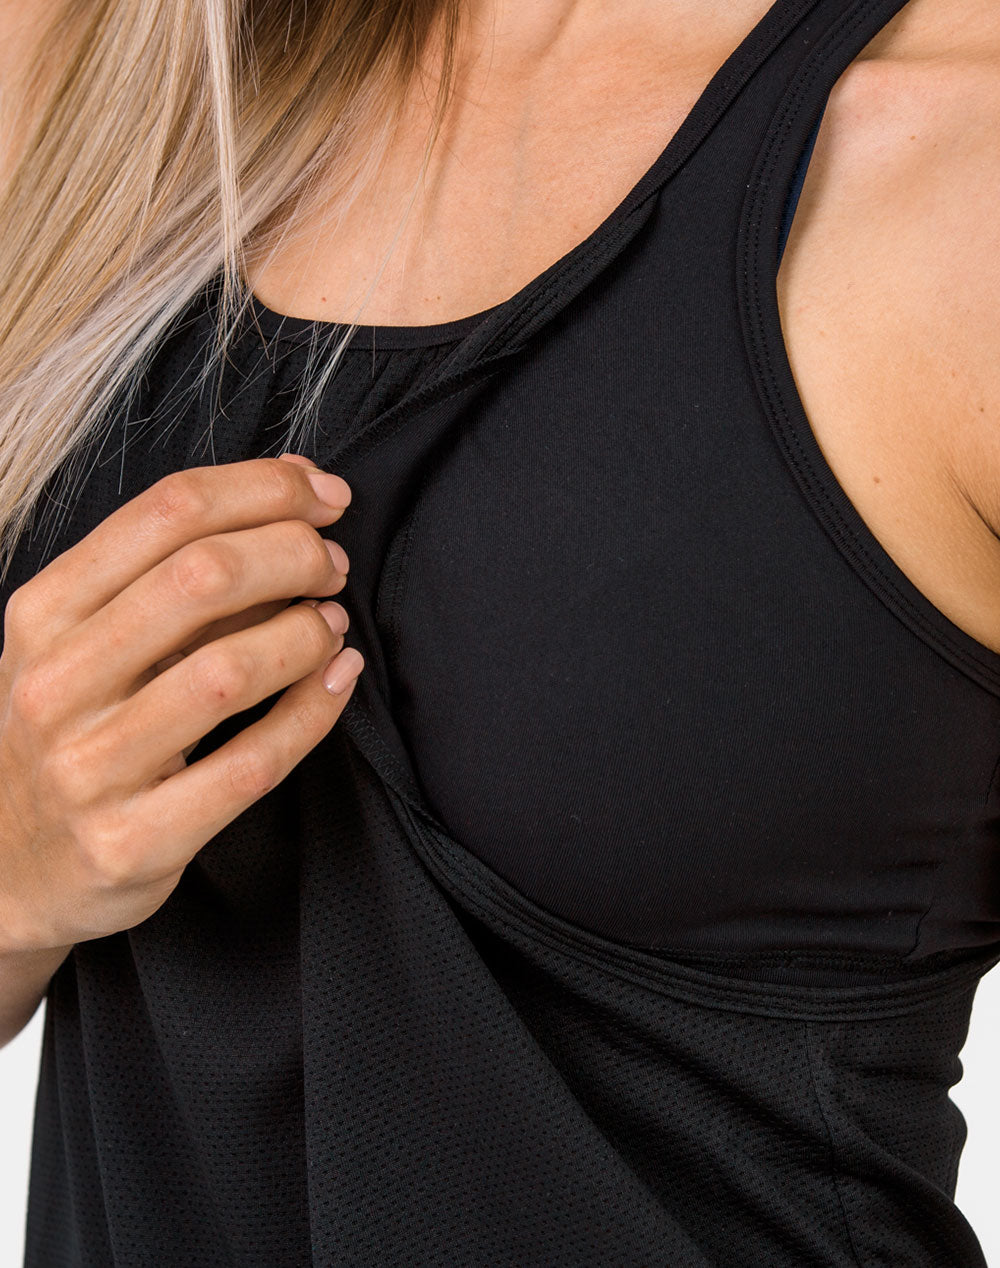 mum in a black breastfeeding top close up with the armhole pulled open to breastfeed